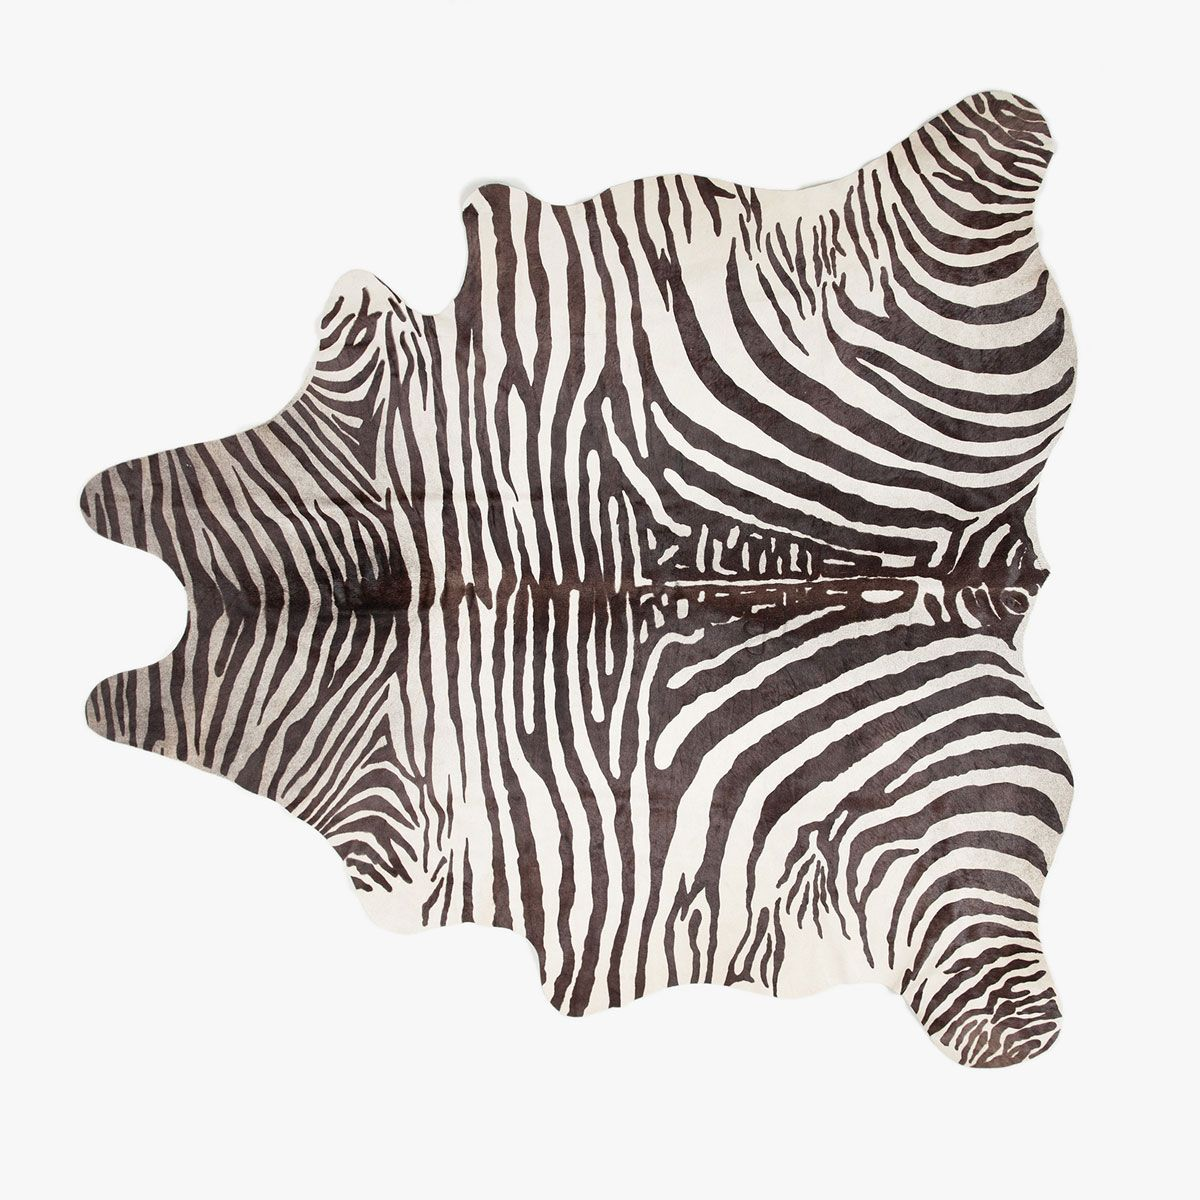 Image 1 Of The Product ZEBRA-PRINT LEATHER RUG